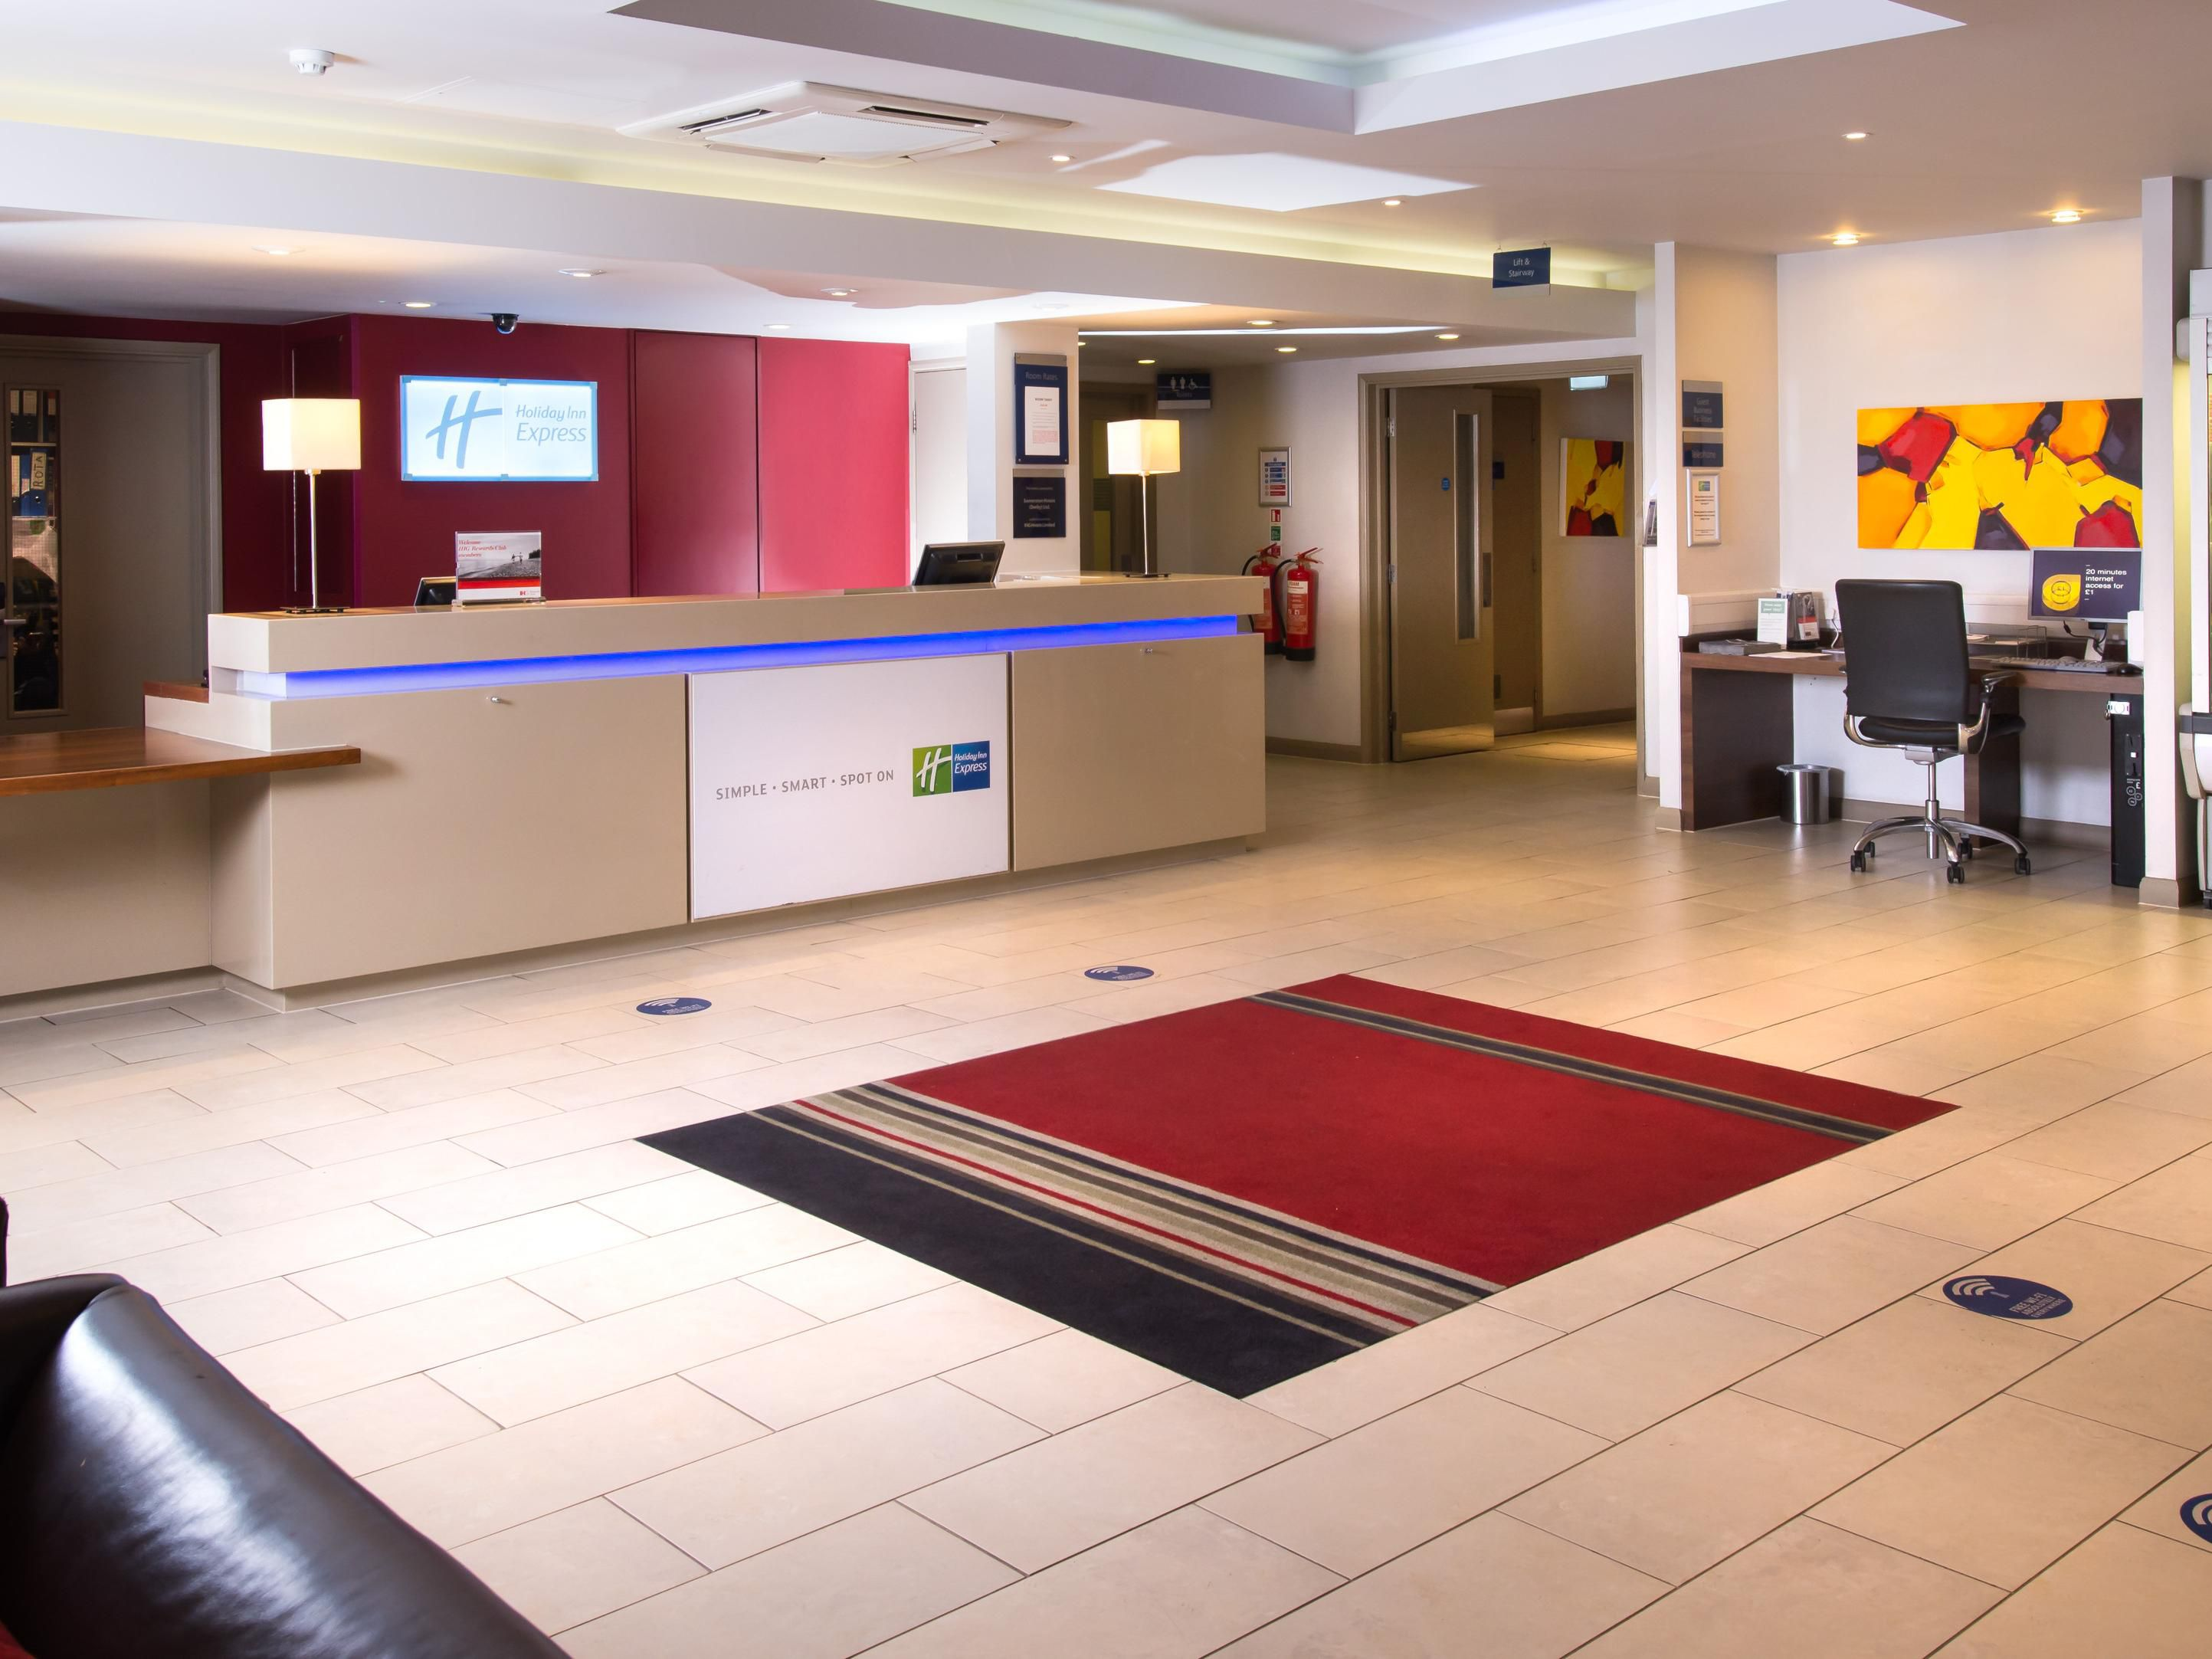 Our hotel in Derby is a no brainer for comfort and convenience